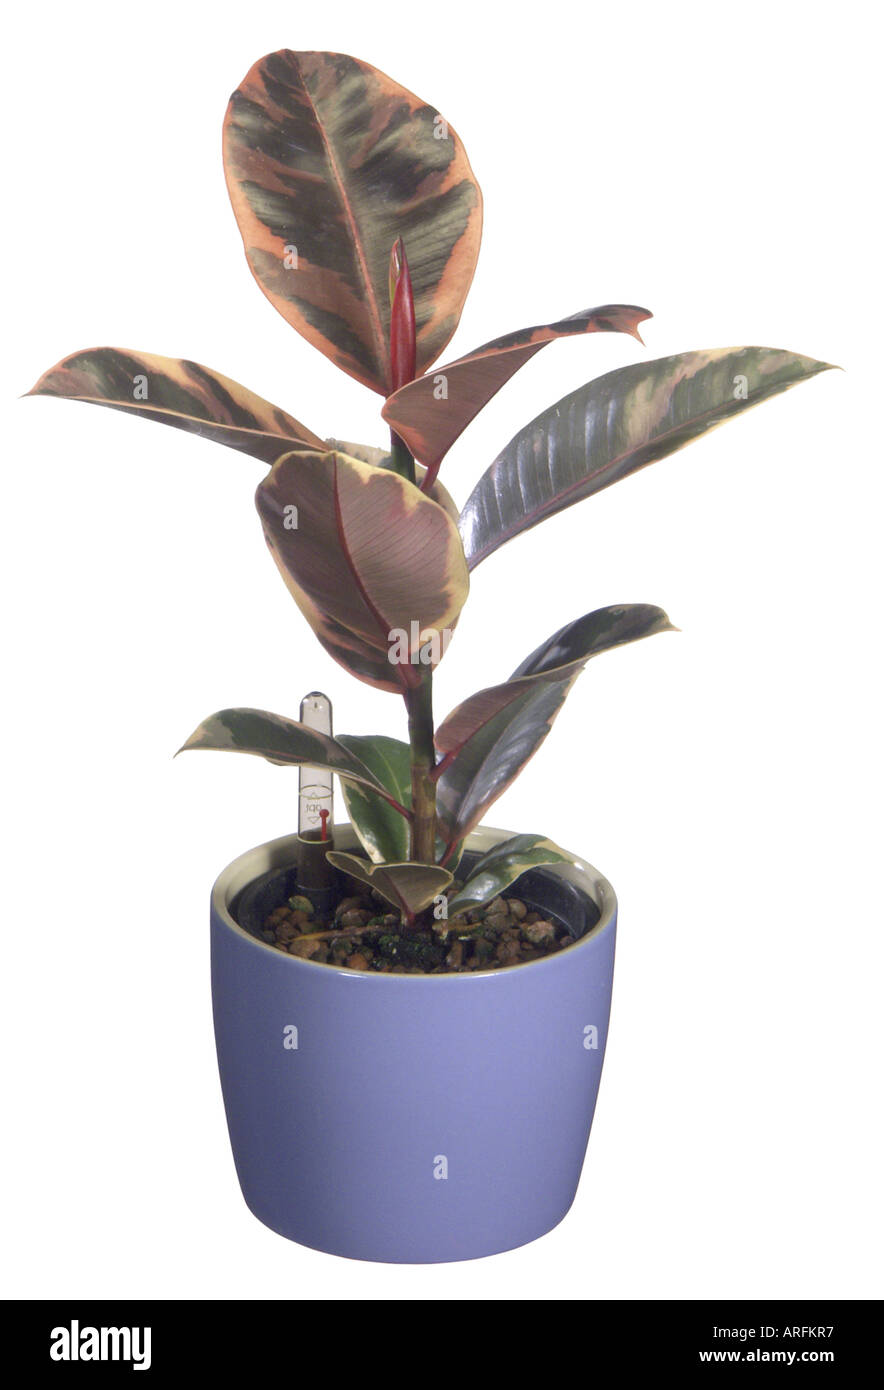 indian rubber tree rubber plant ficus elastica hydroponic plant